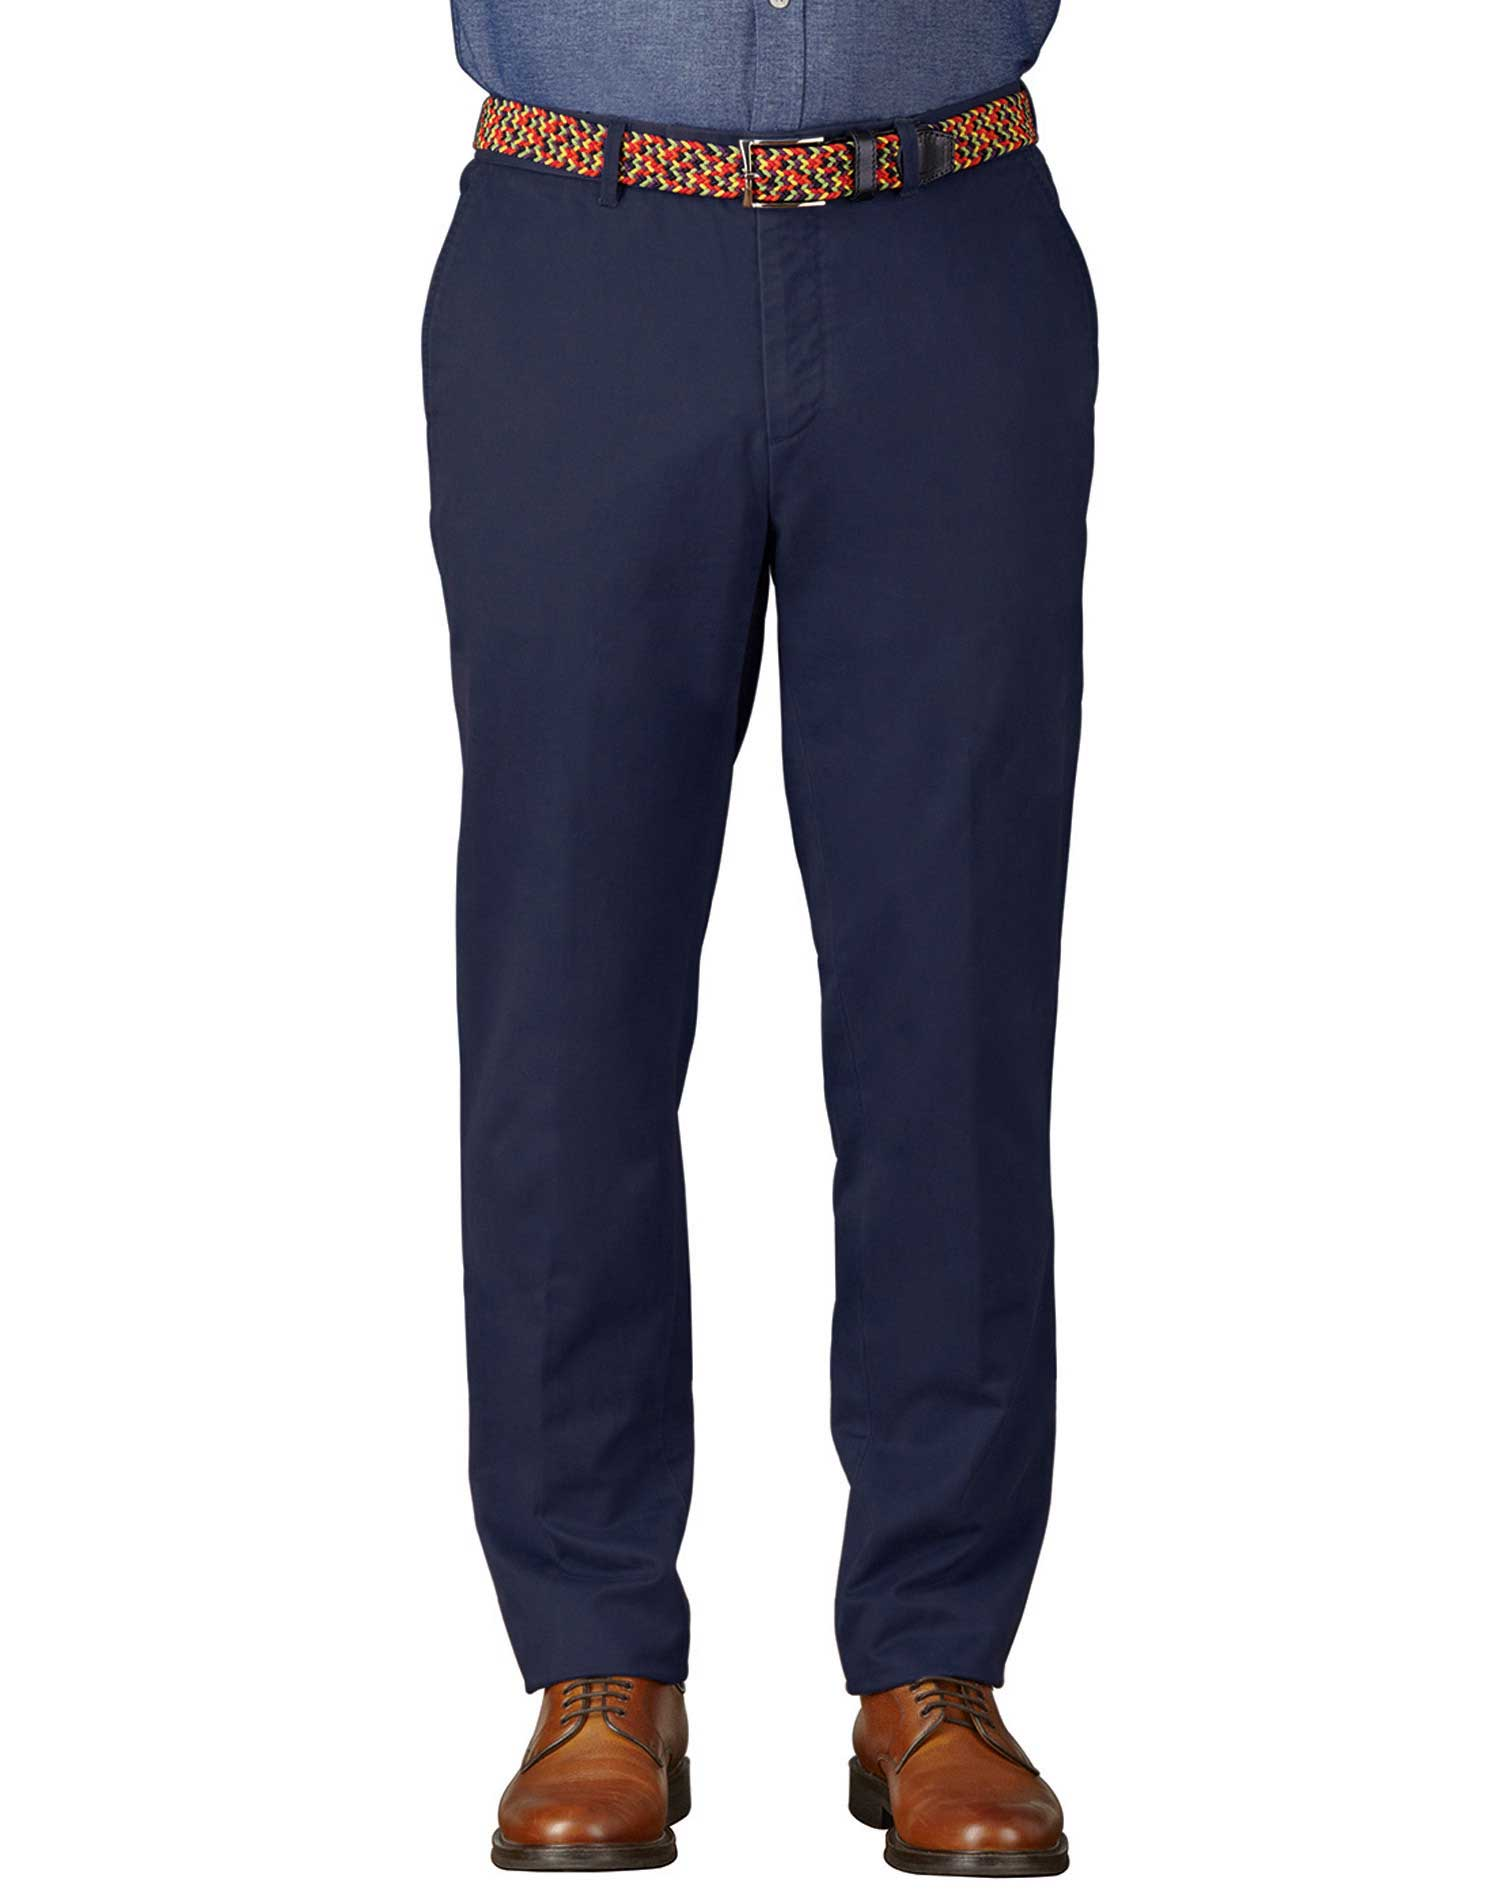 Marine Blue Extra Slim Fit Flat Front Cotton Chino Trousers Size W38 L32 by Charles Tyrwhitt